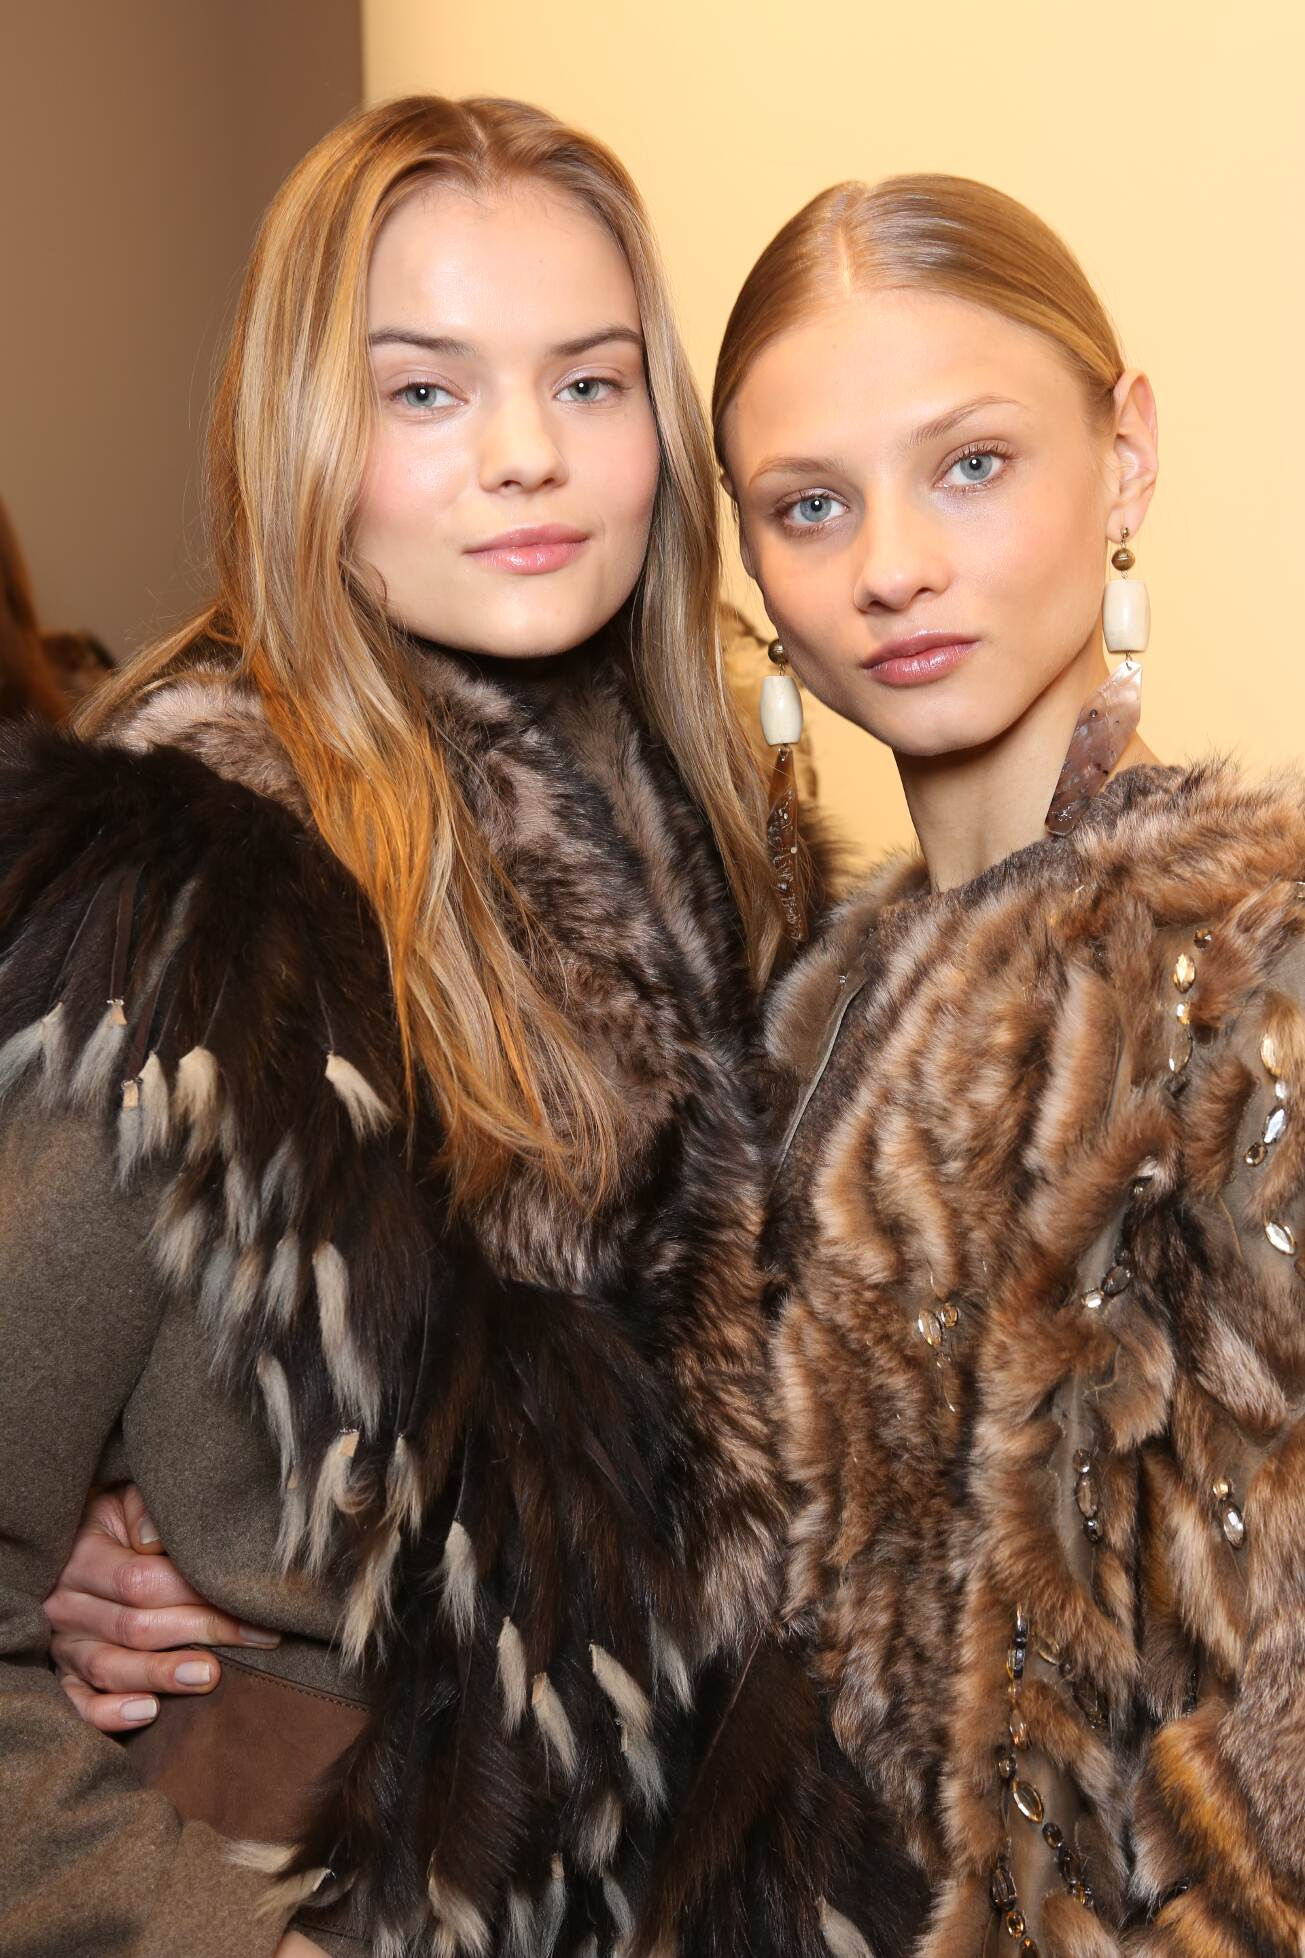 Backstage Ralph Lauren Models FW 2015 New York